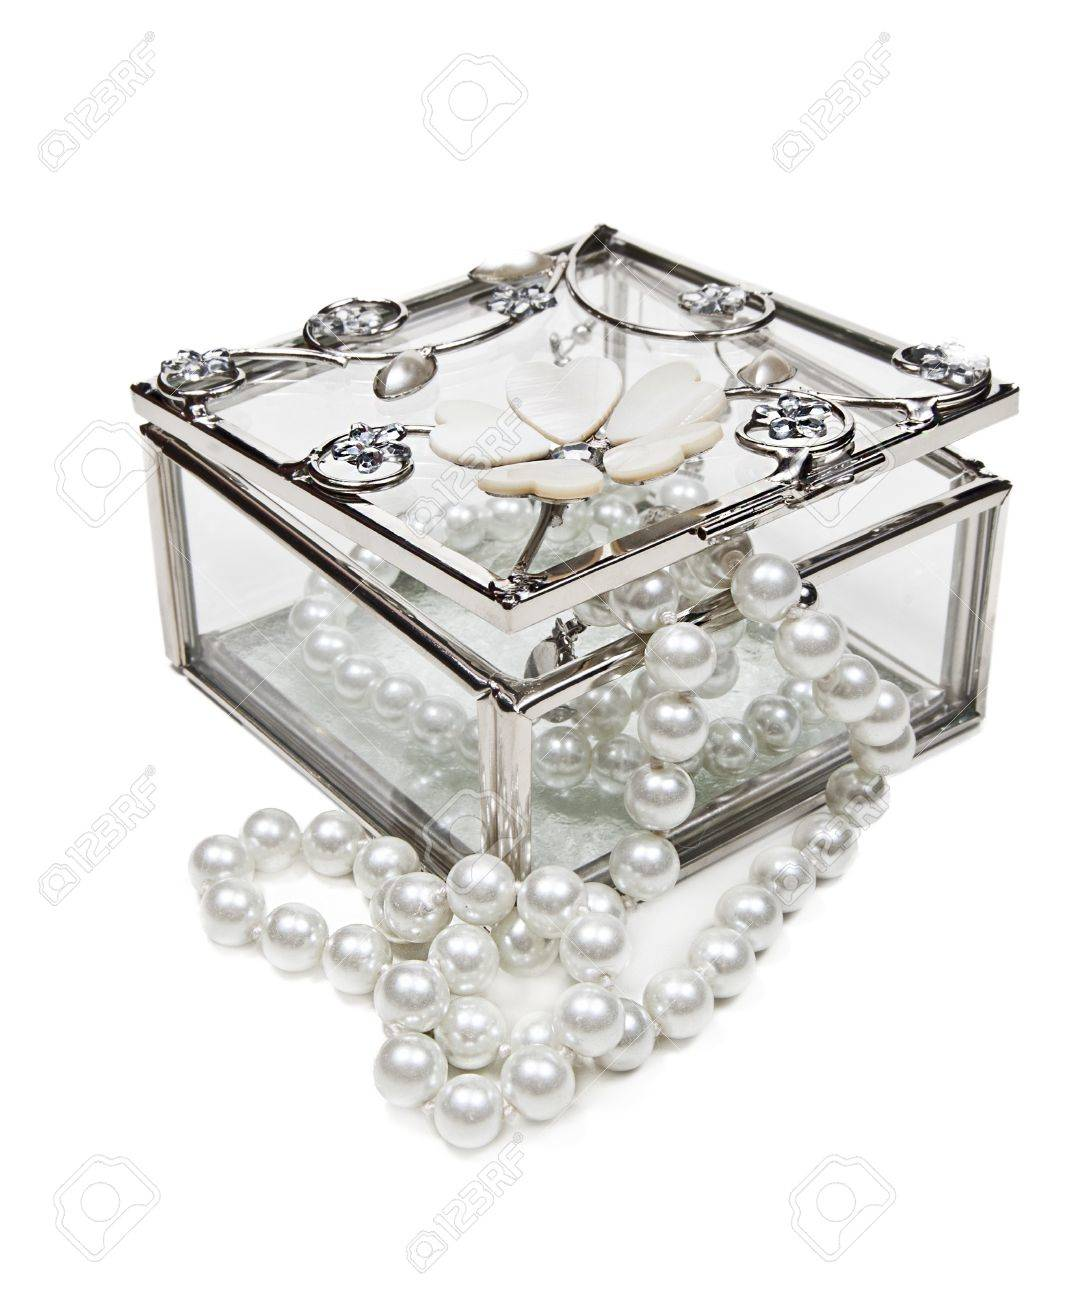 Fullsize Of Glass Jewelry Box